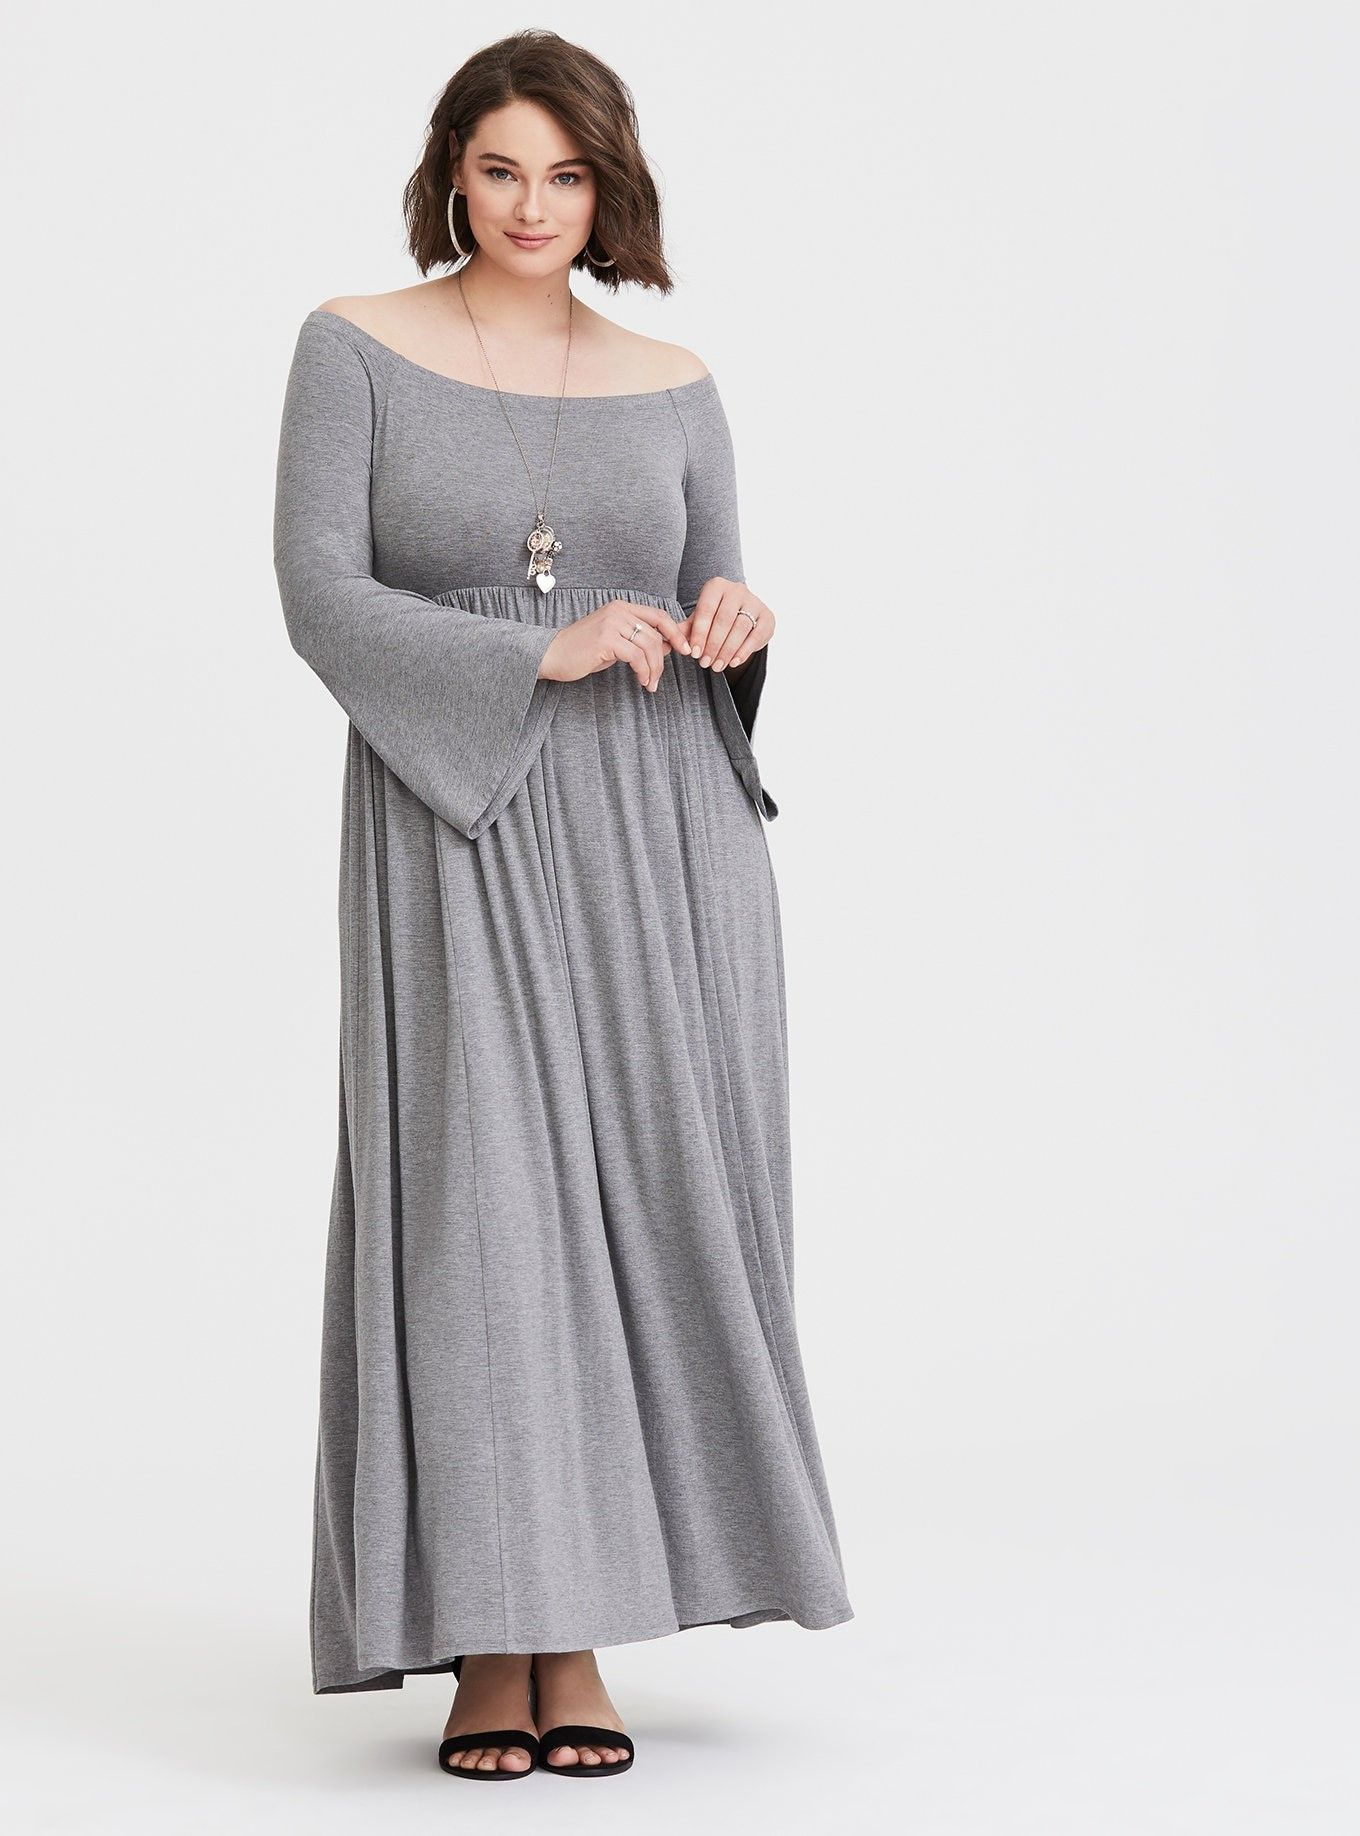 6cc7d290f66 Grey Off Shoulder Jersey Maxi Dress - An empire waist nips you in and  flares out creating an hourglass figure on a jersey knit maxi dress with  billowing ...